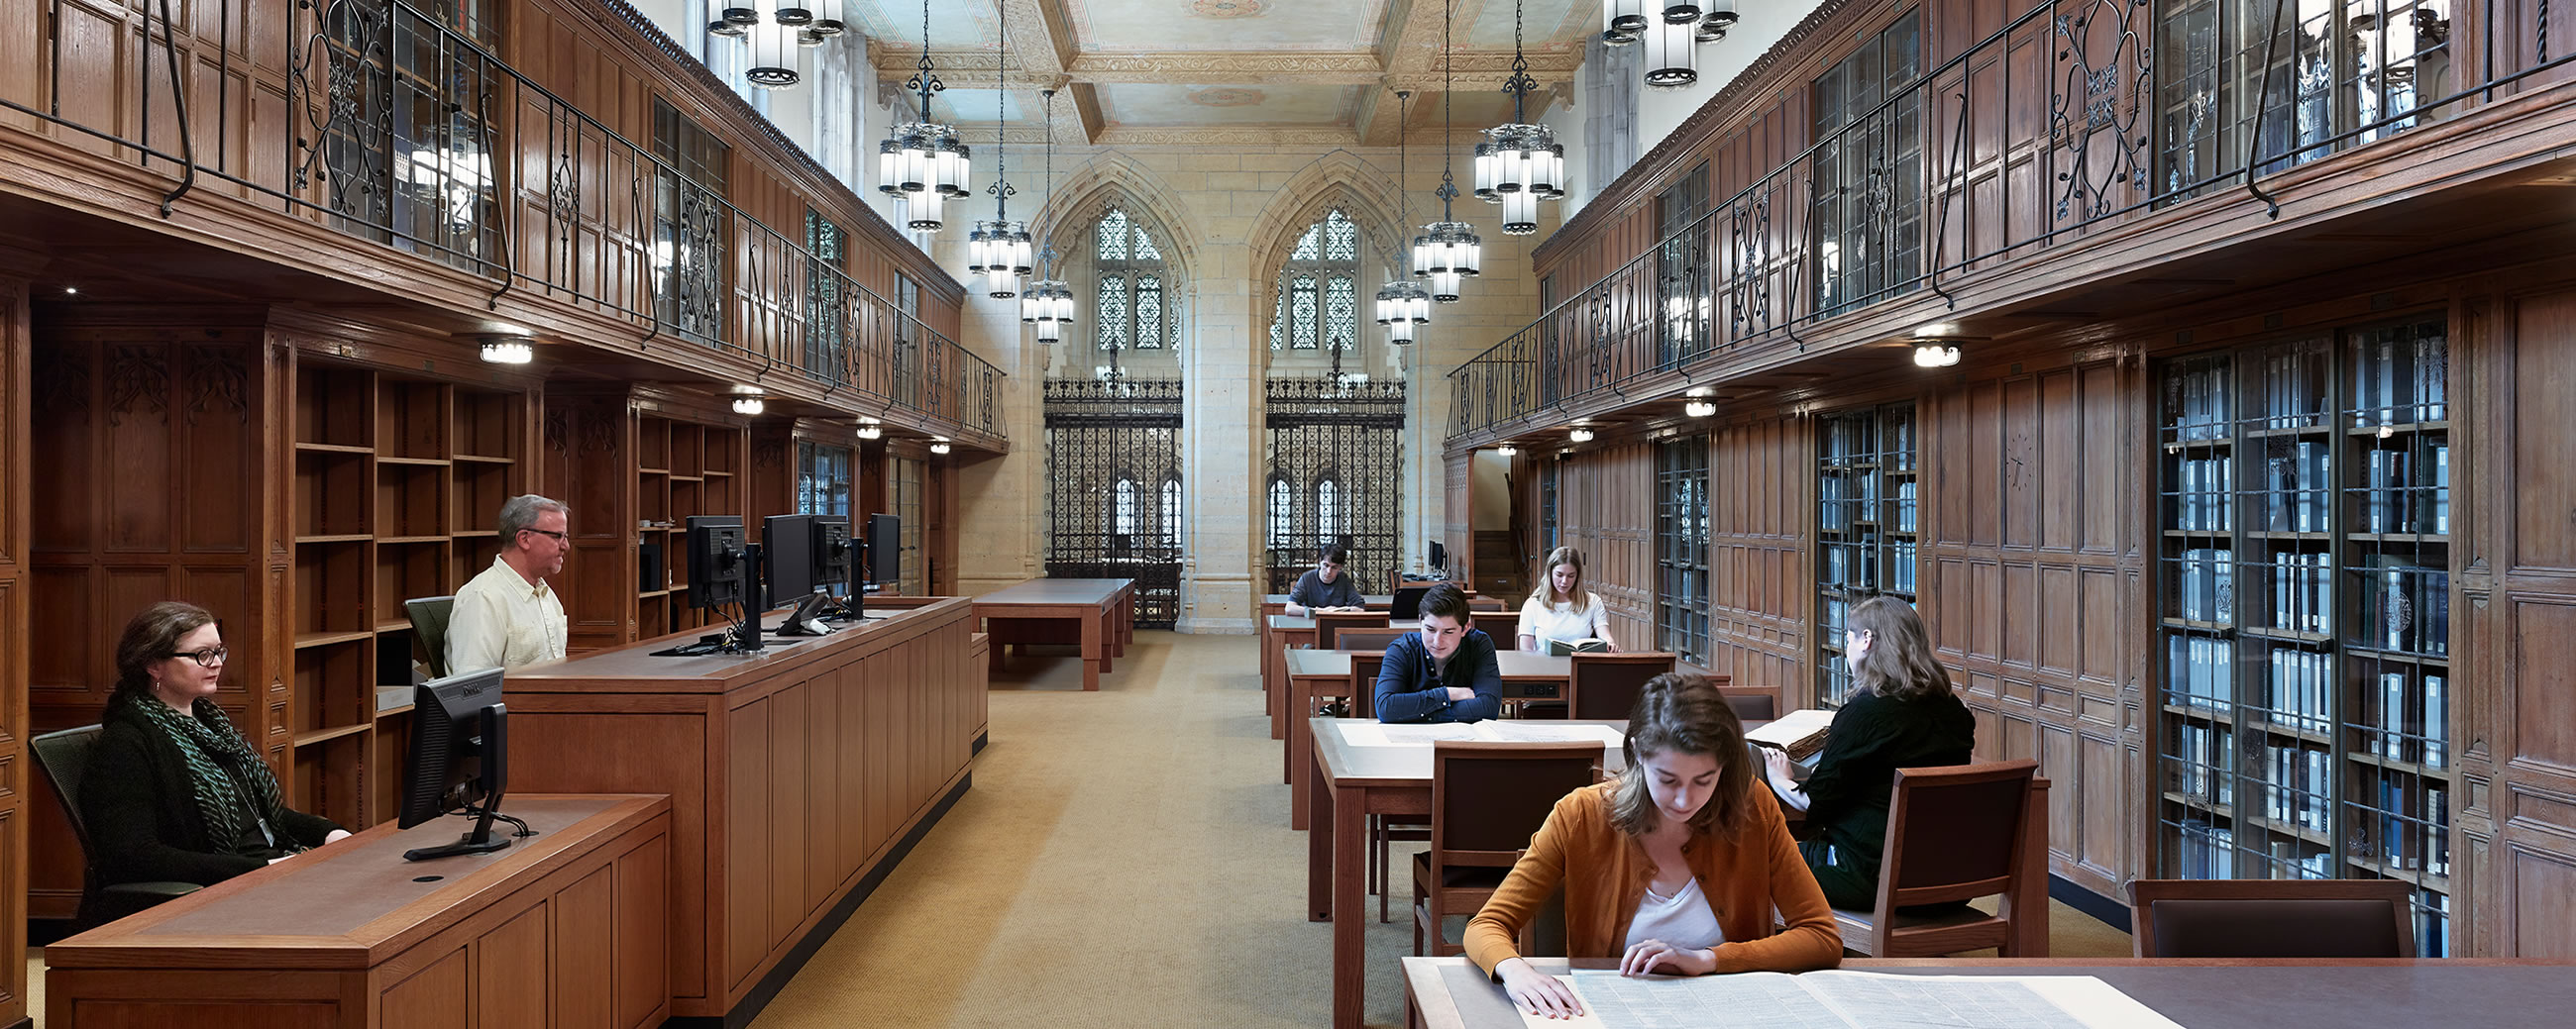 Yale University Sterling Memorial Library Code Red